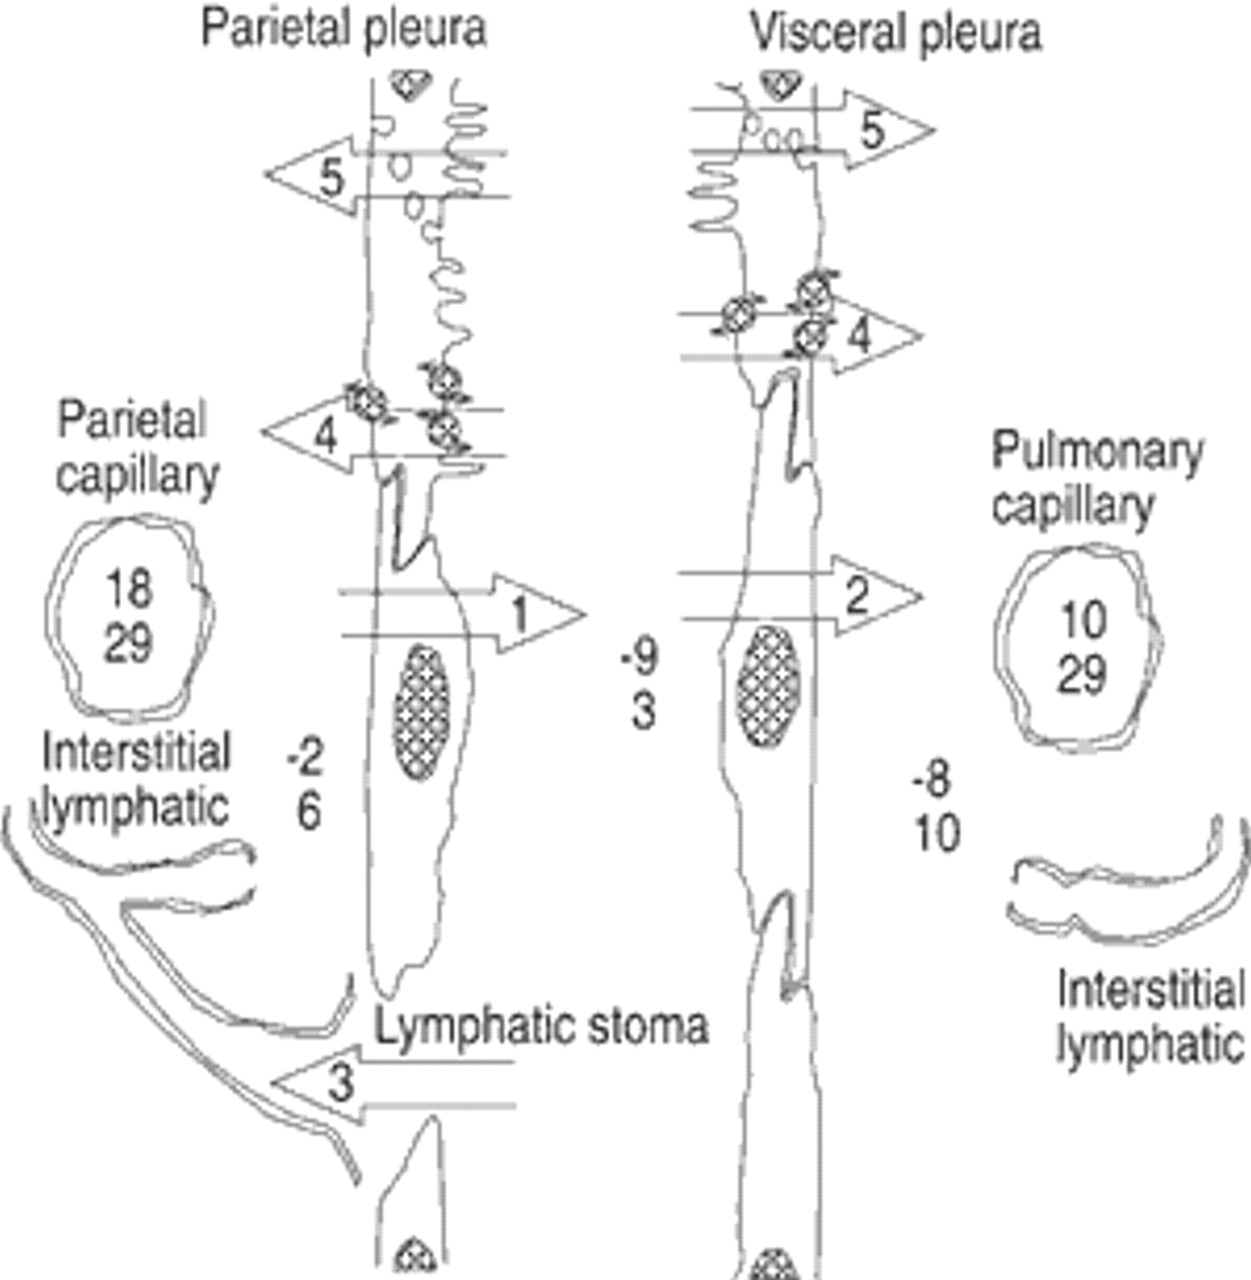 Physiology And Pathophysiology Of Pleural Fluid Turnover European